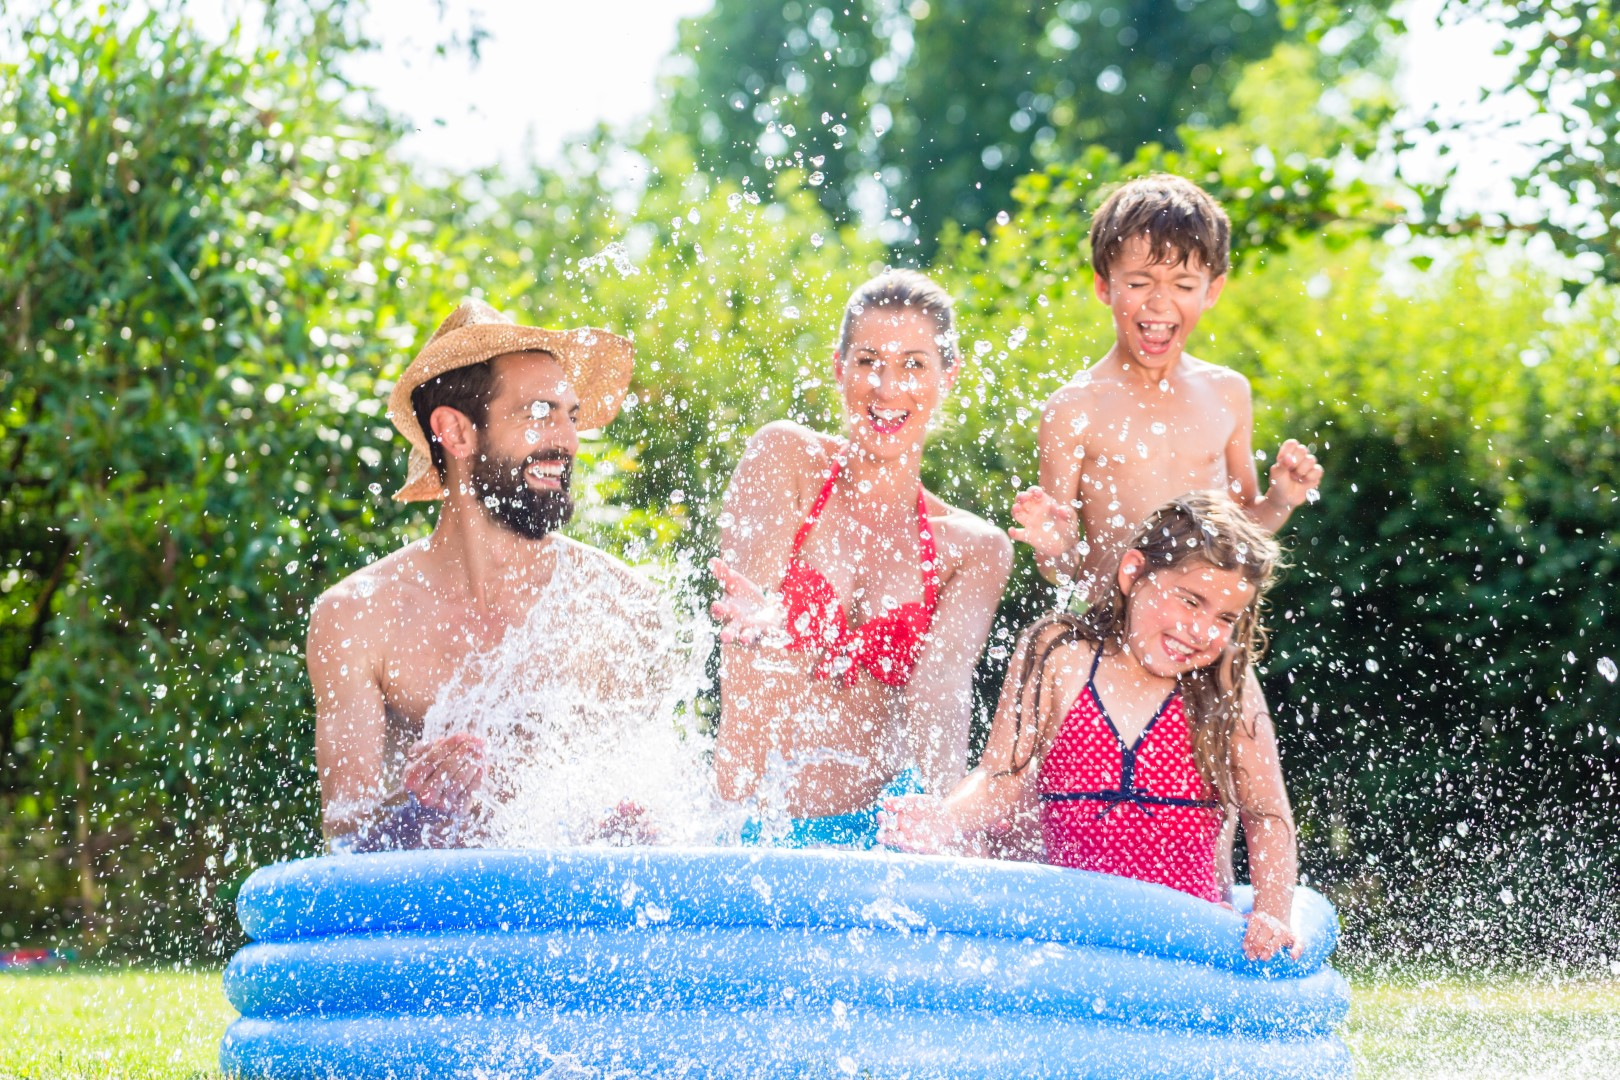 Did you know your inflatable pool could need a compliance certificate?